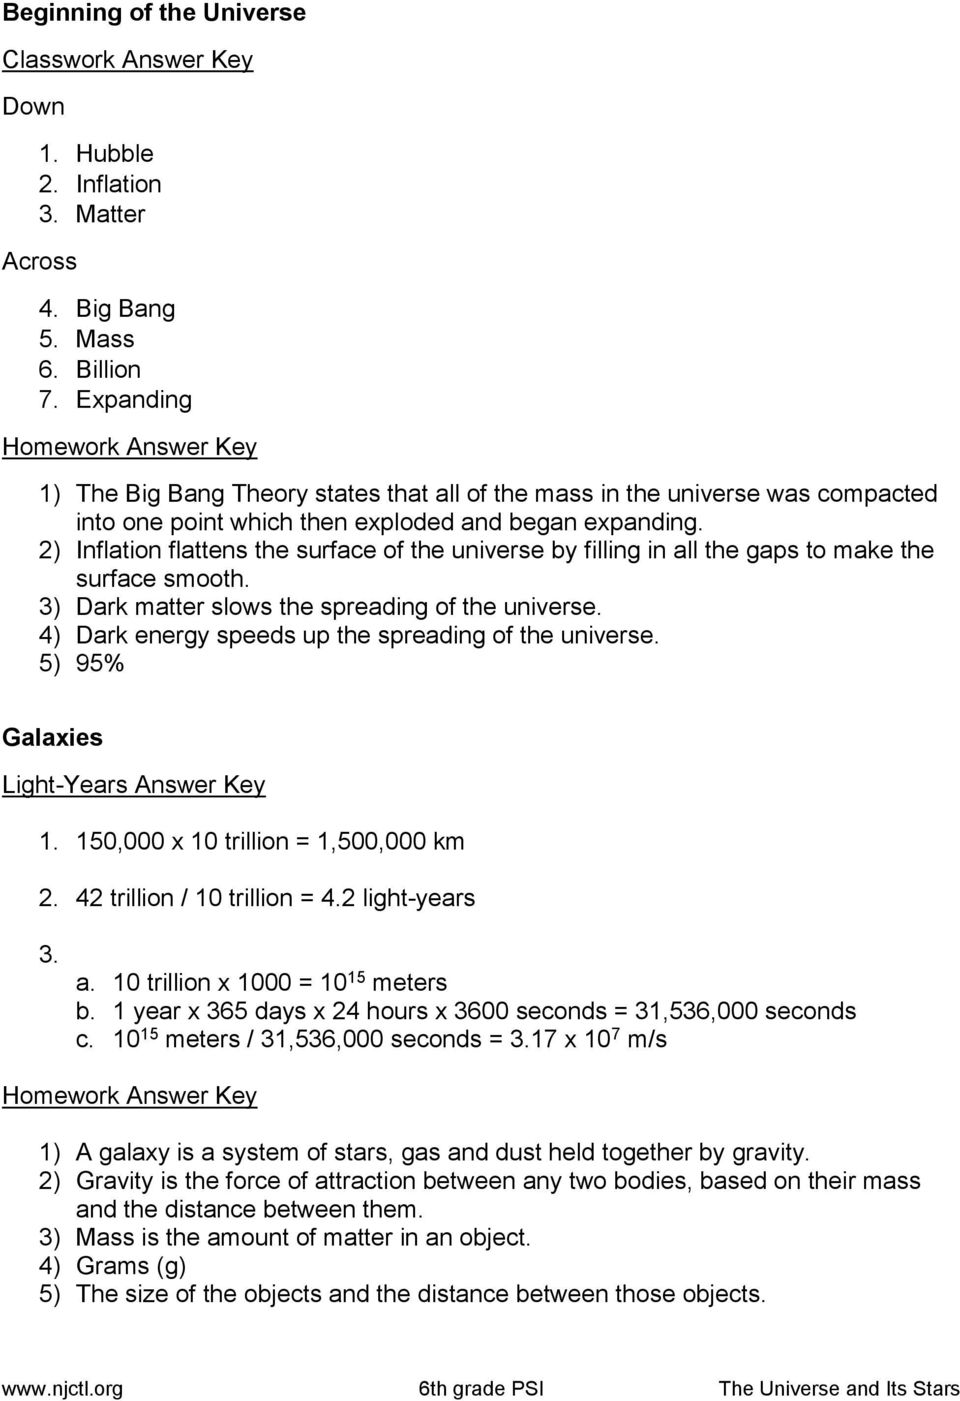 medium resolution of Beginning of the Universe Classwork 6 th Grade PSI Science - PDF Free  Download